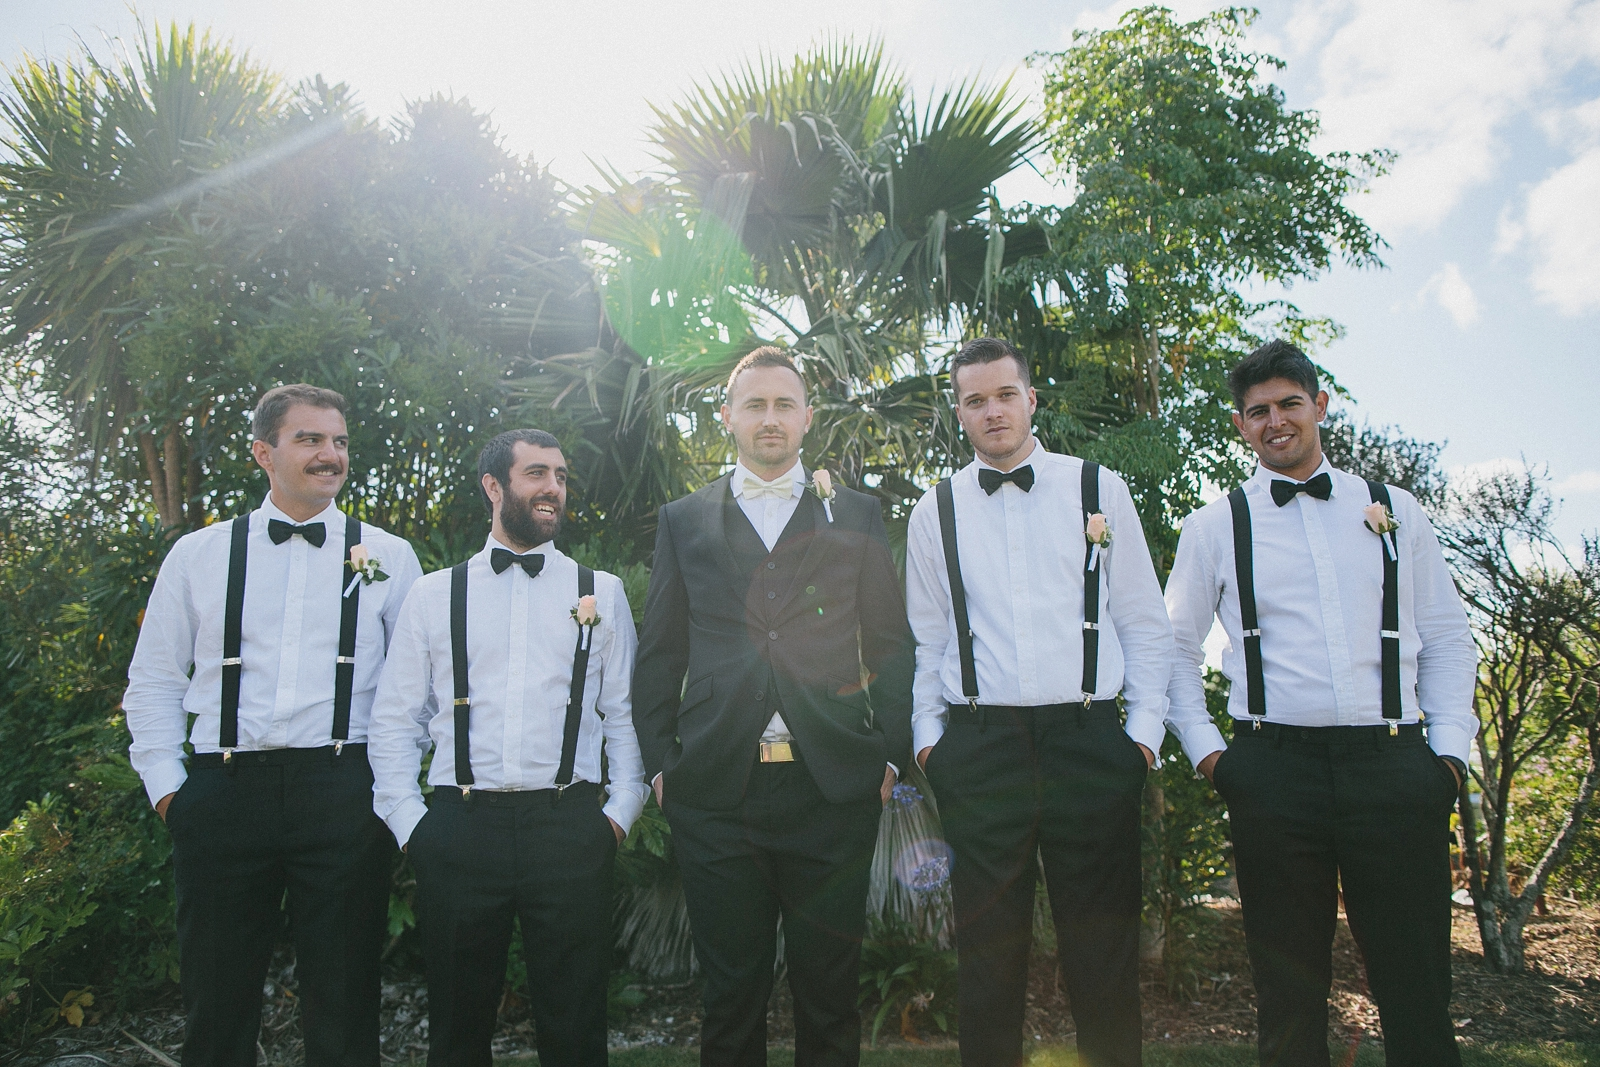 ConnorLaura_Auckland Wedding Photographer_Patty Lagera_0068.jpg